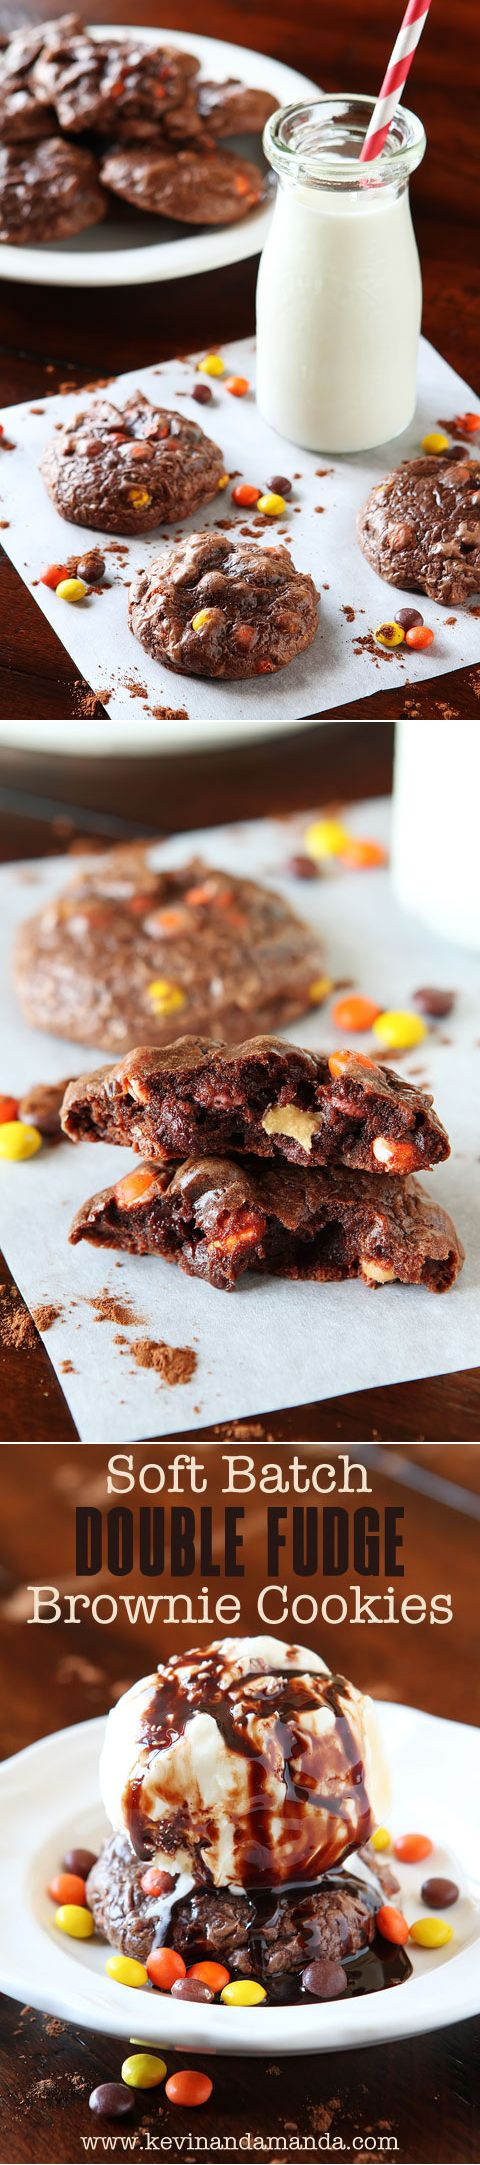 boxed brownies brownie desserts brownie cookies brownie mix brownies ...